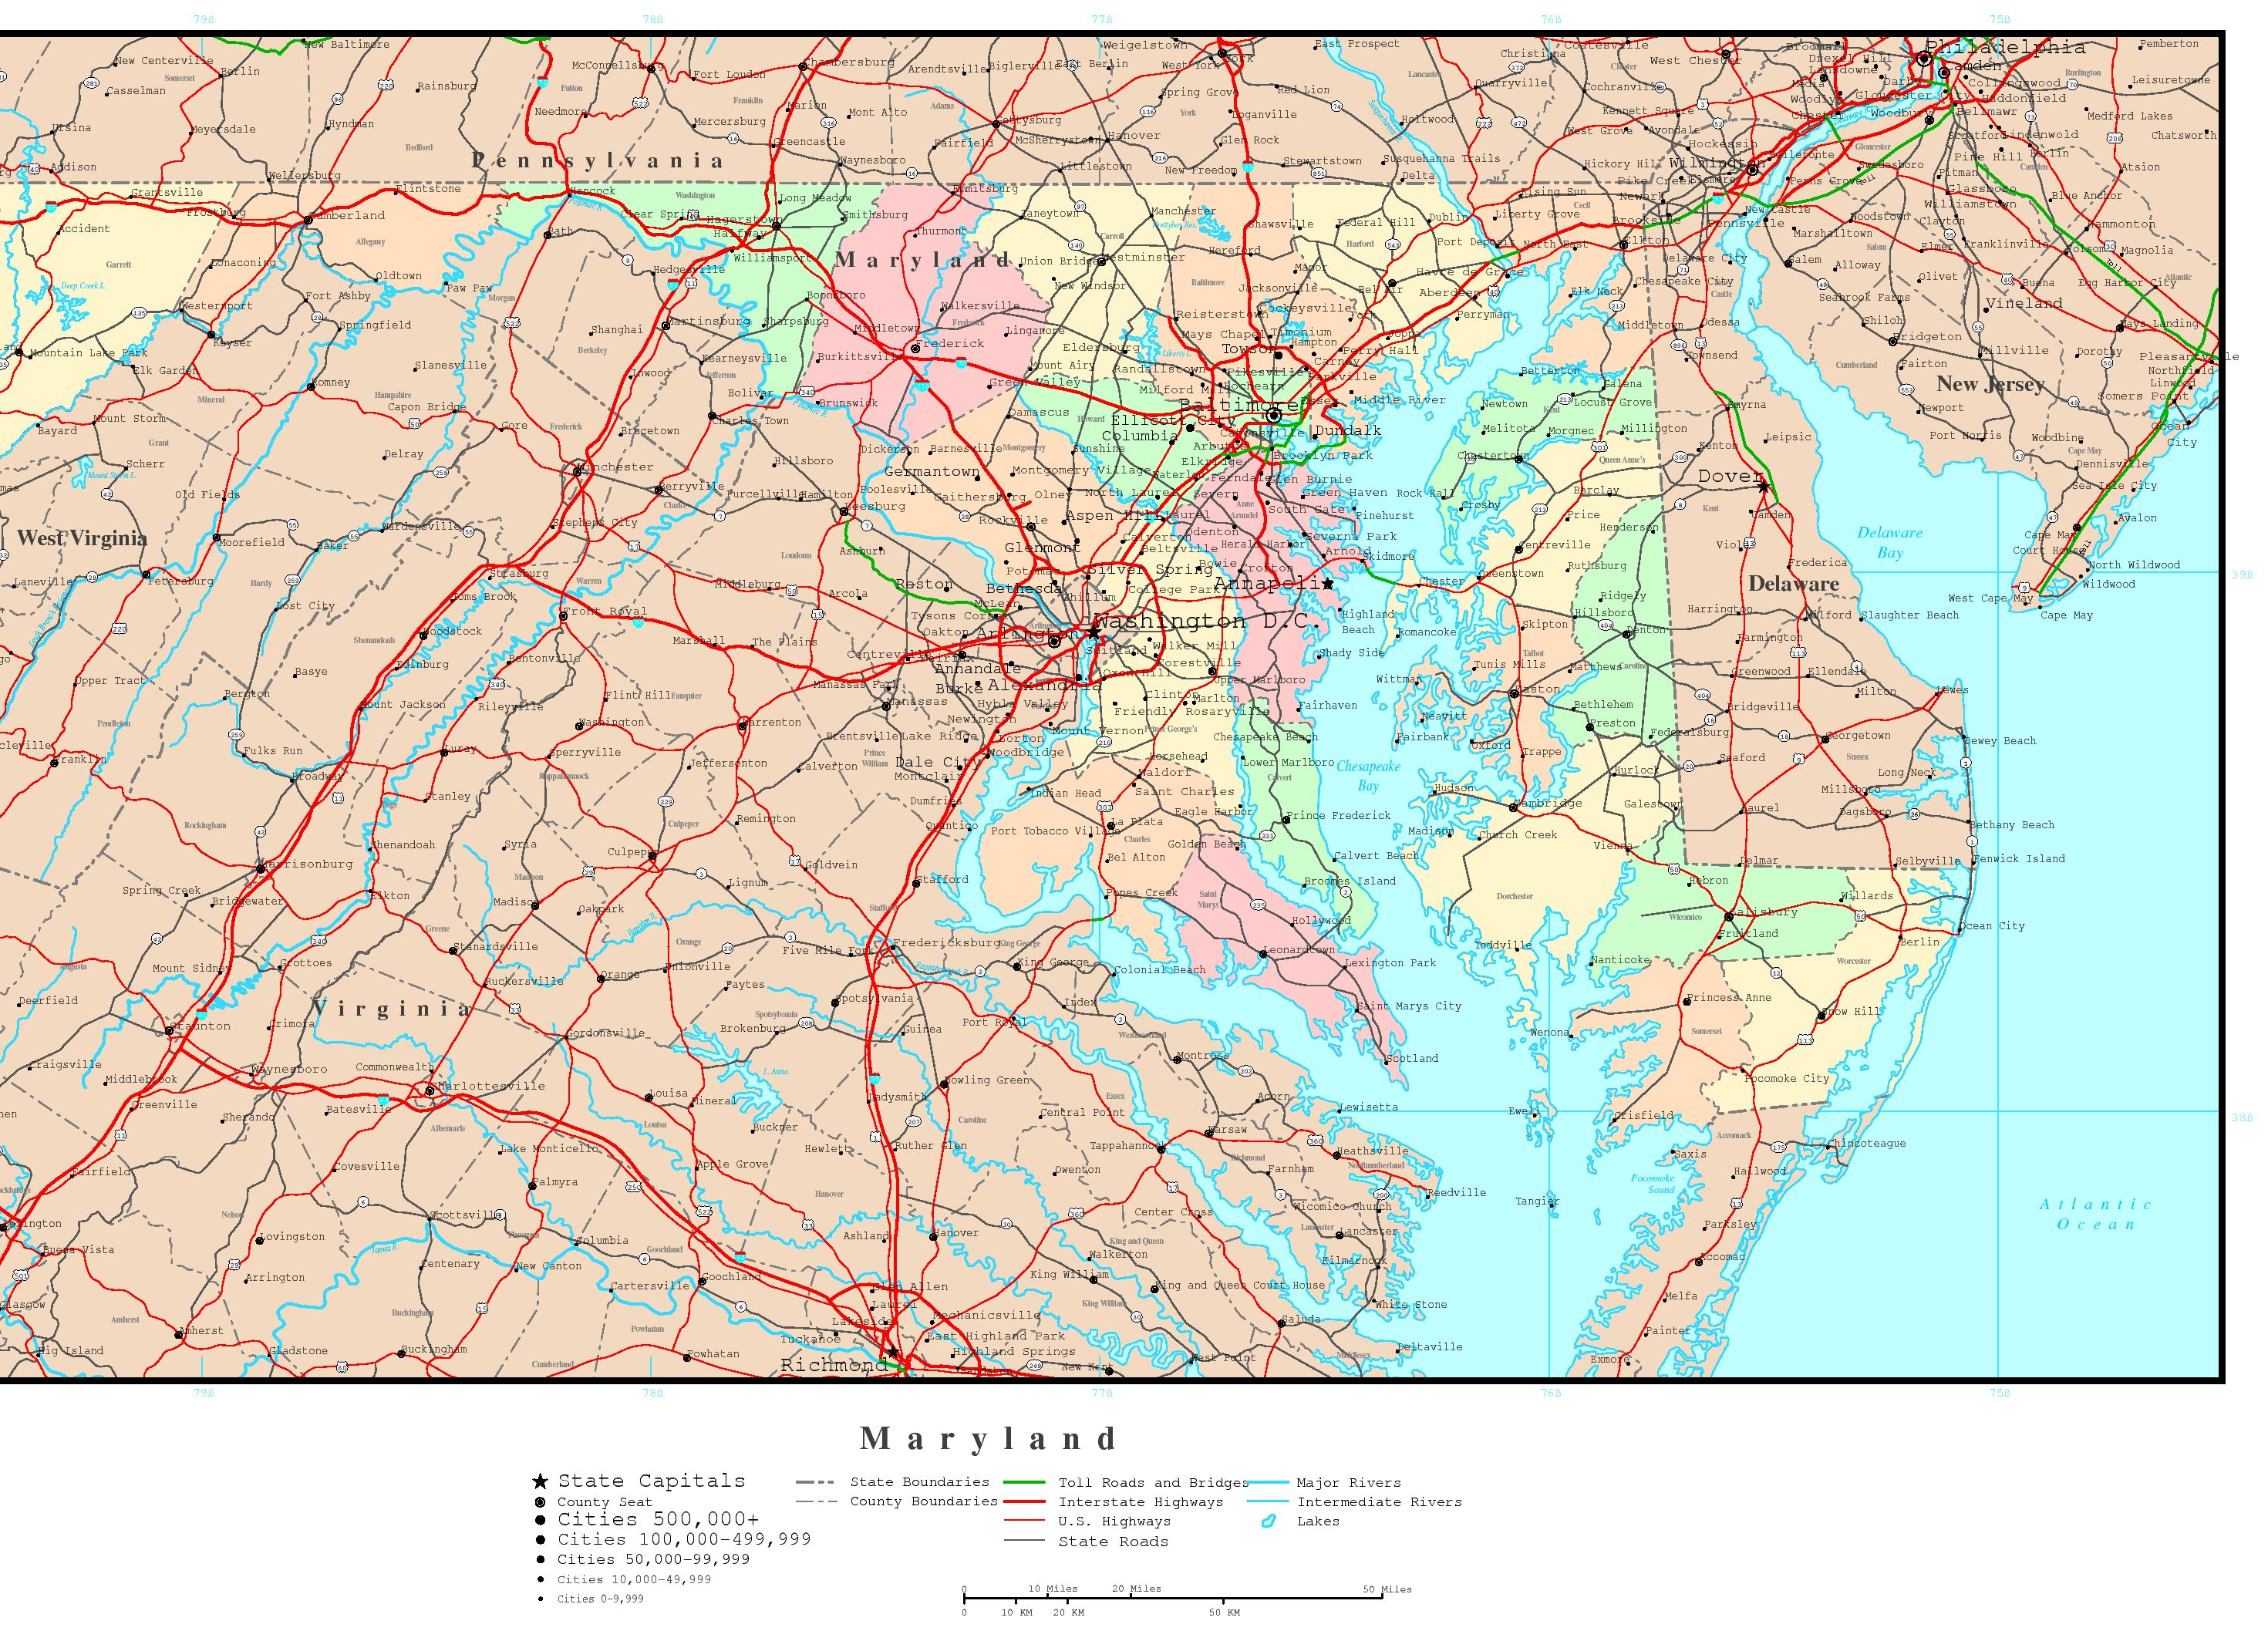 Clickable Map Of Maryland United States Marylandgif Map Of - Delaware us map